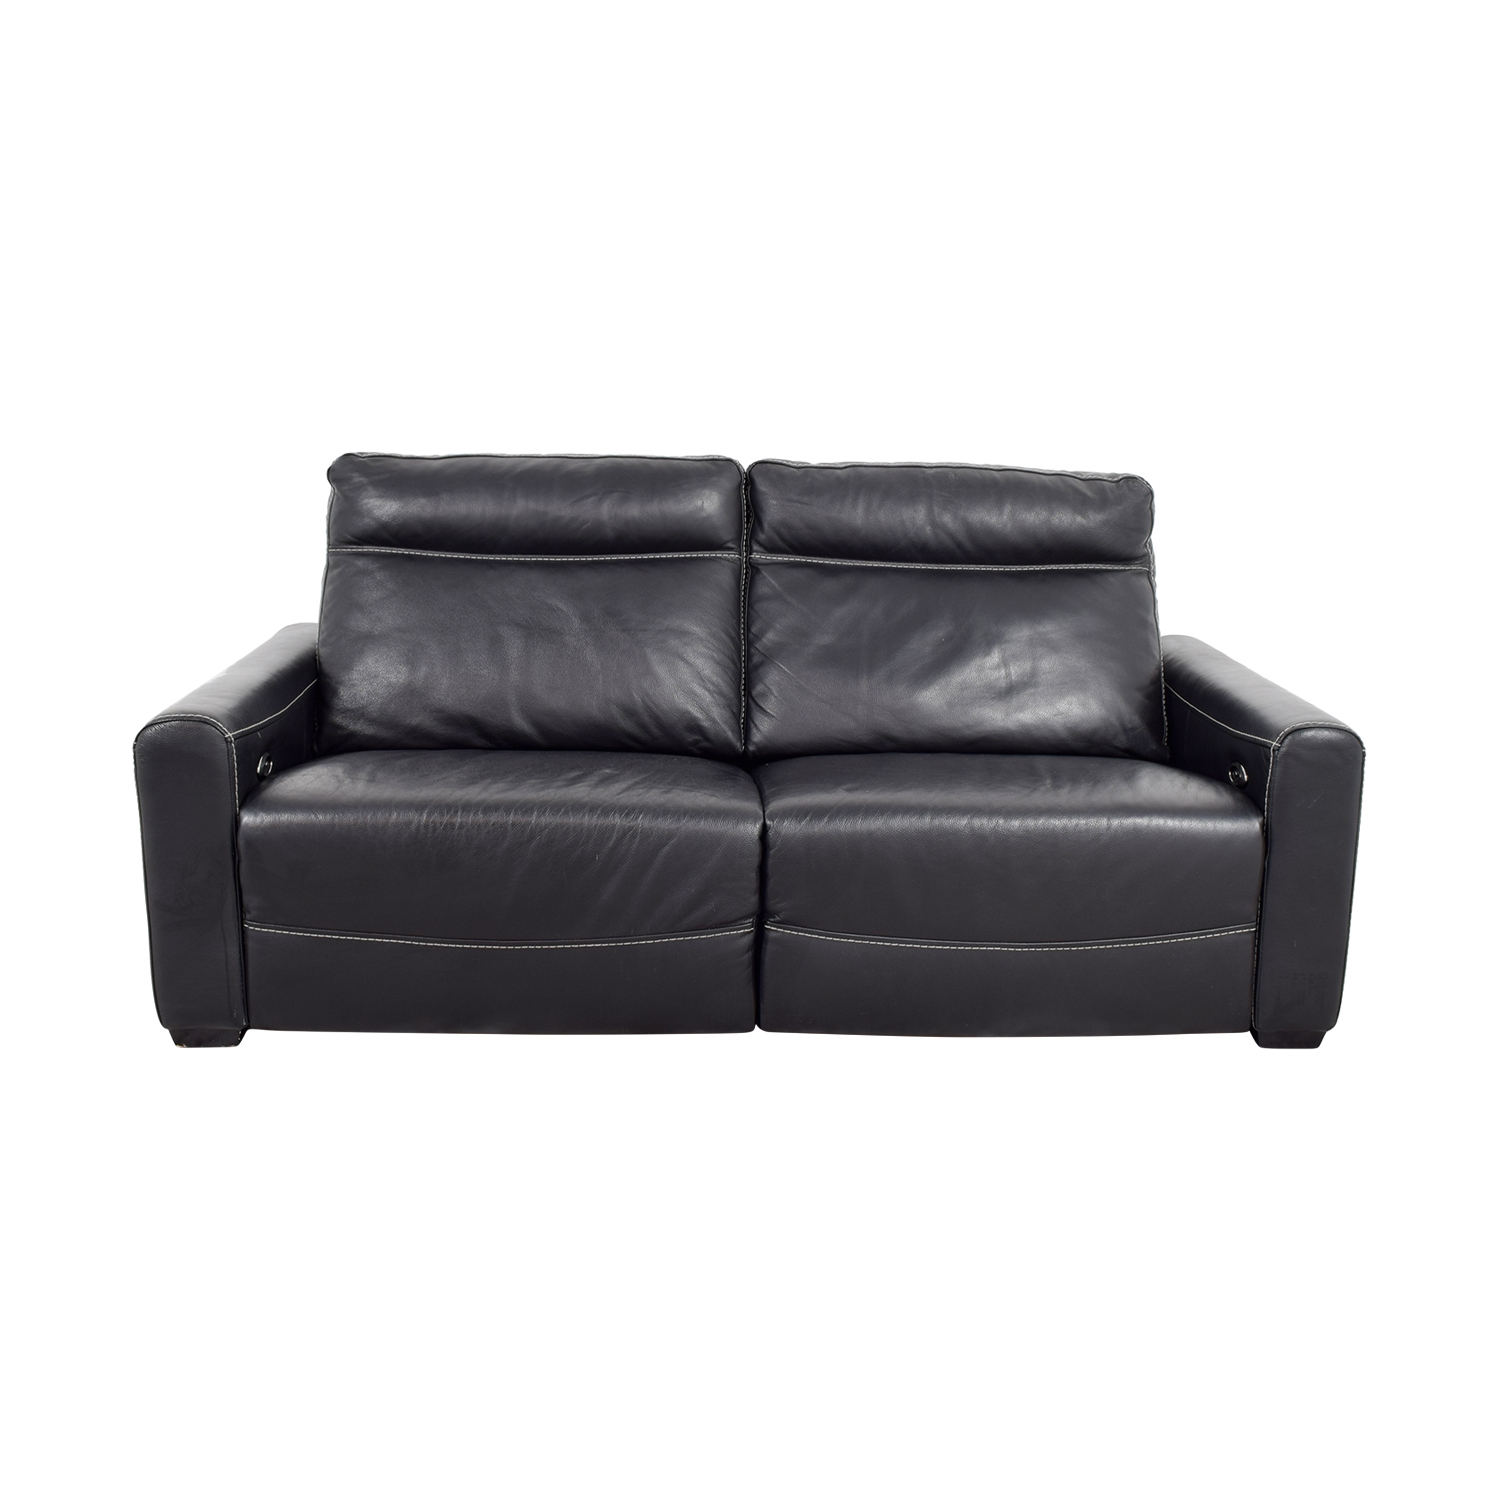 Macys Macys Black Leather Reclining Sofa price